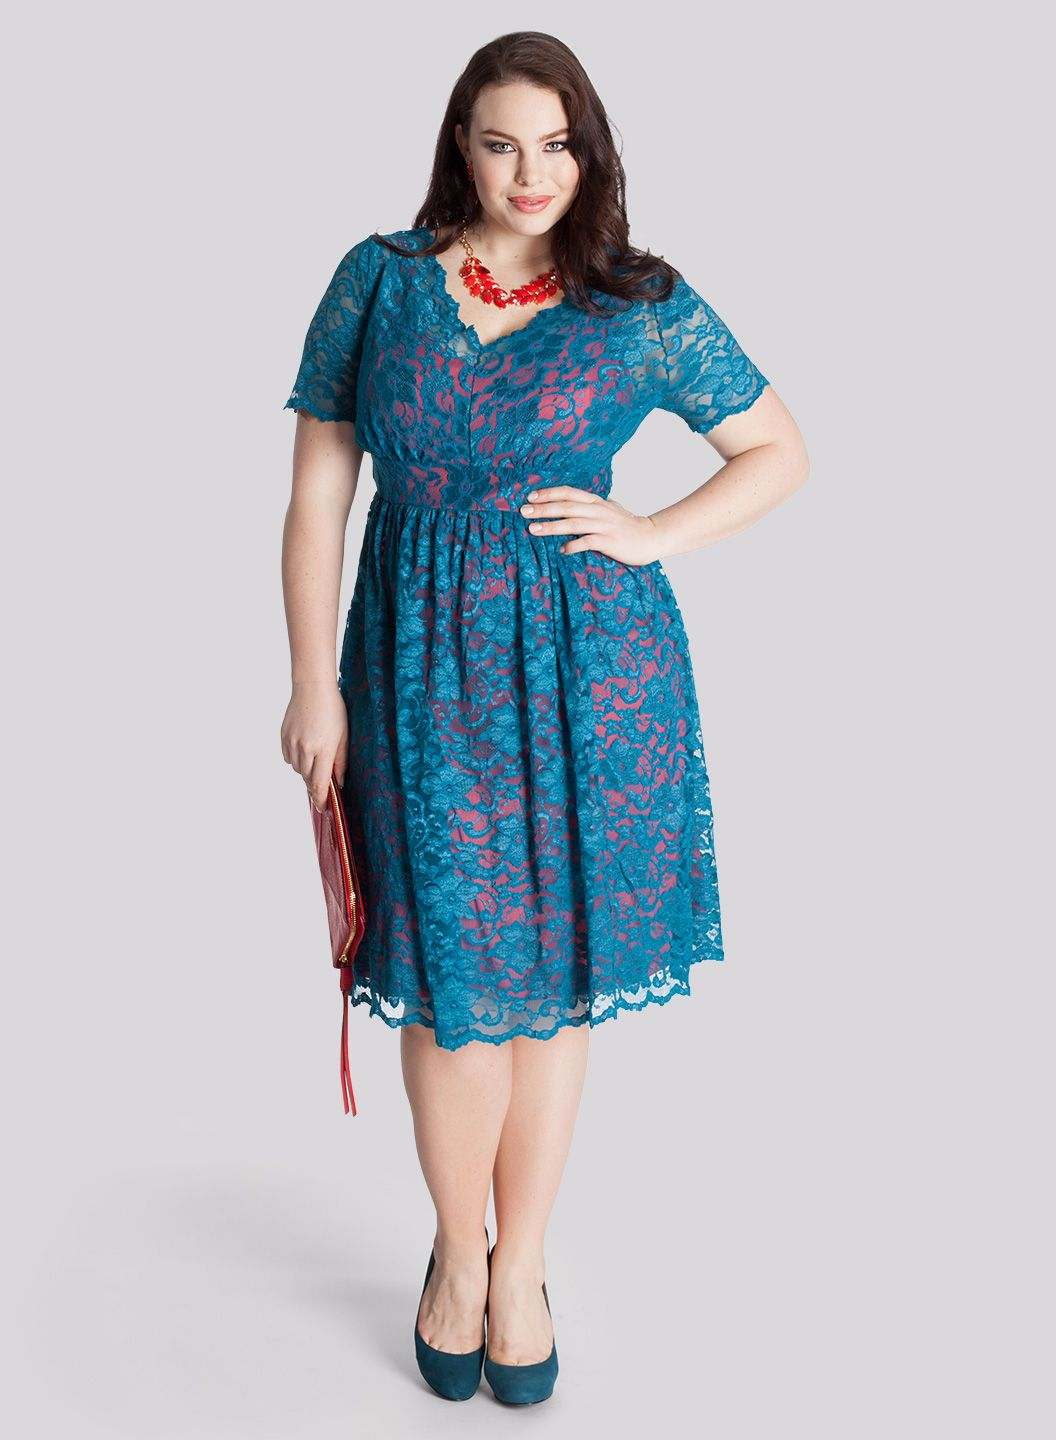 Plus Size Wedding Guest Dresses For Summer Island Wedding